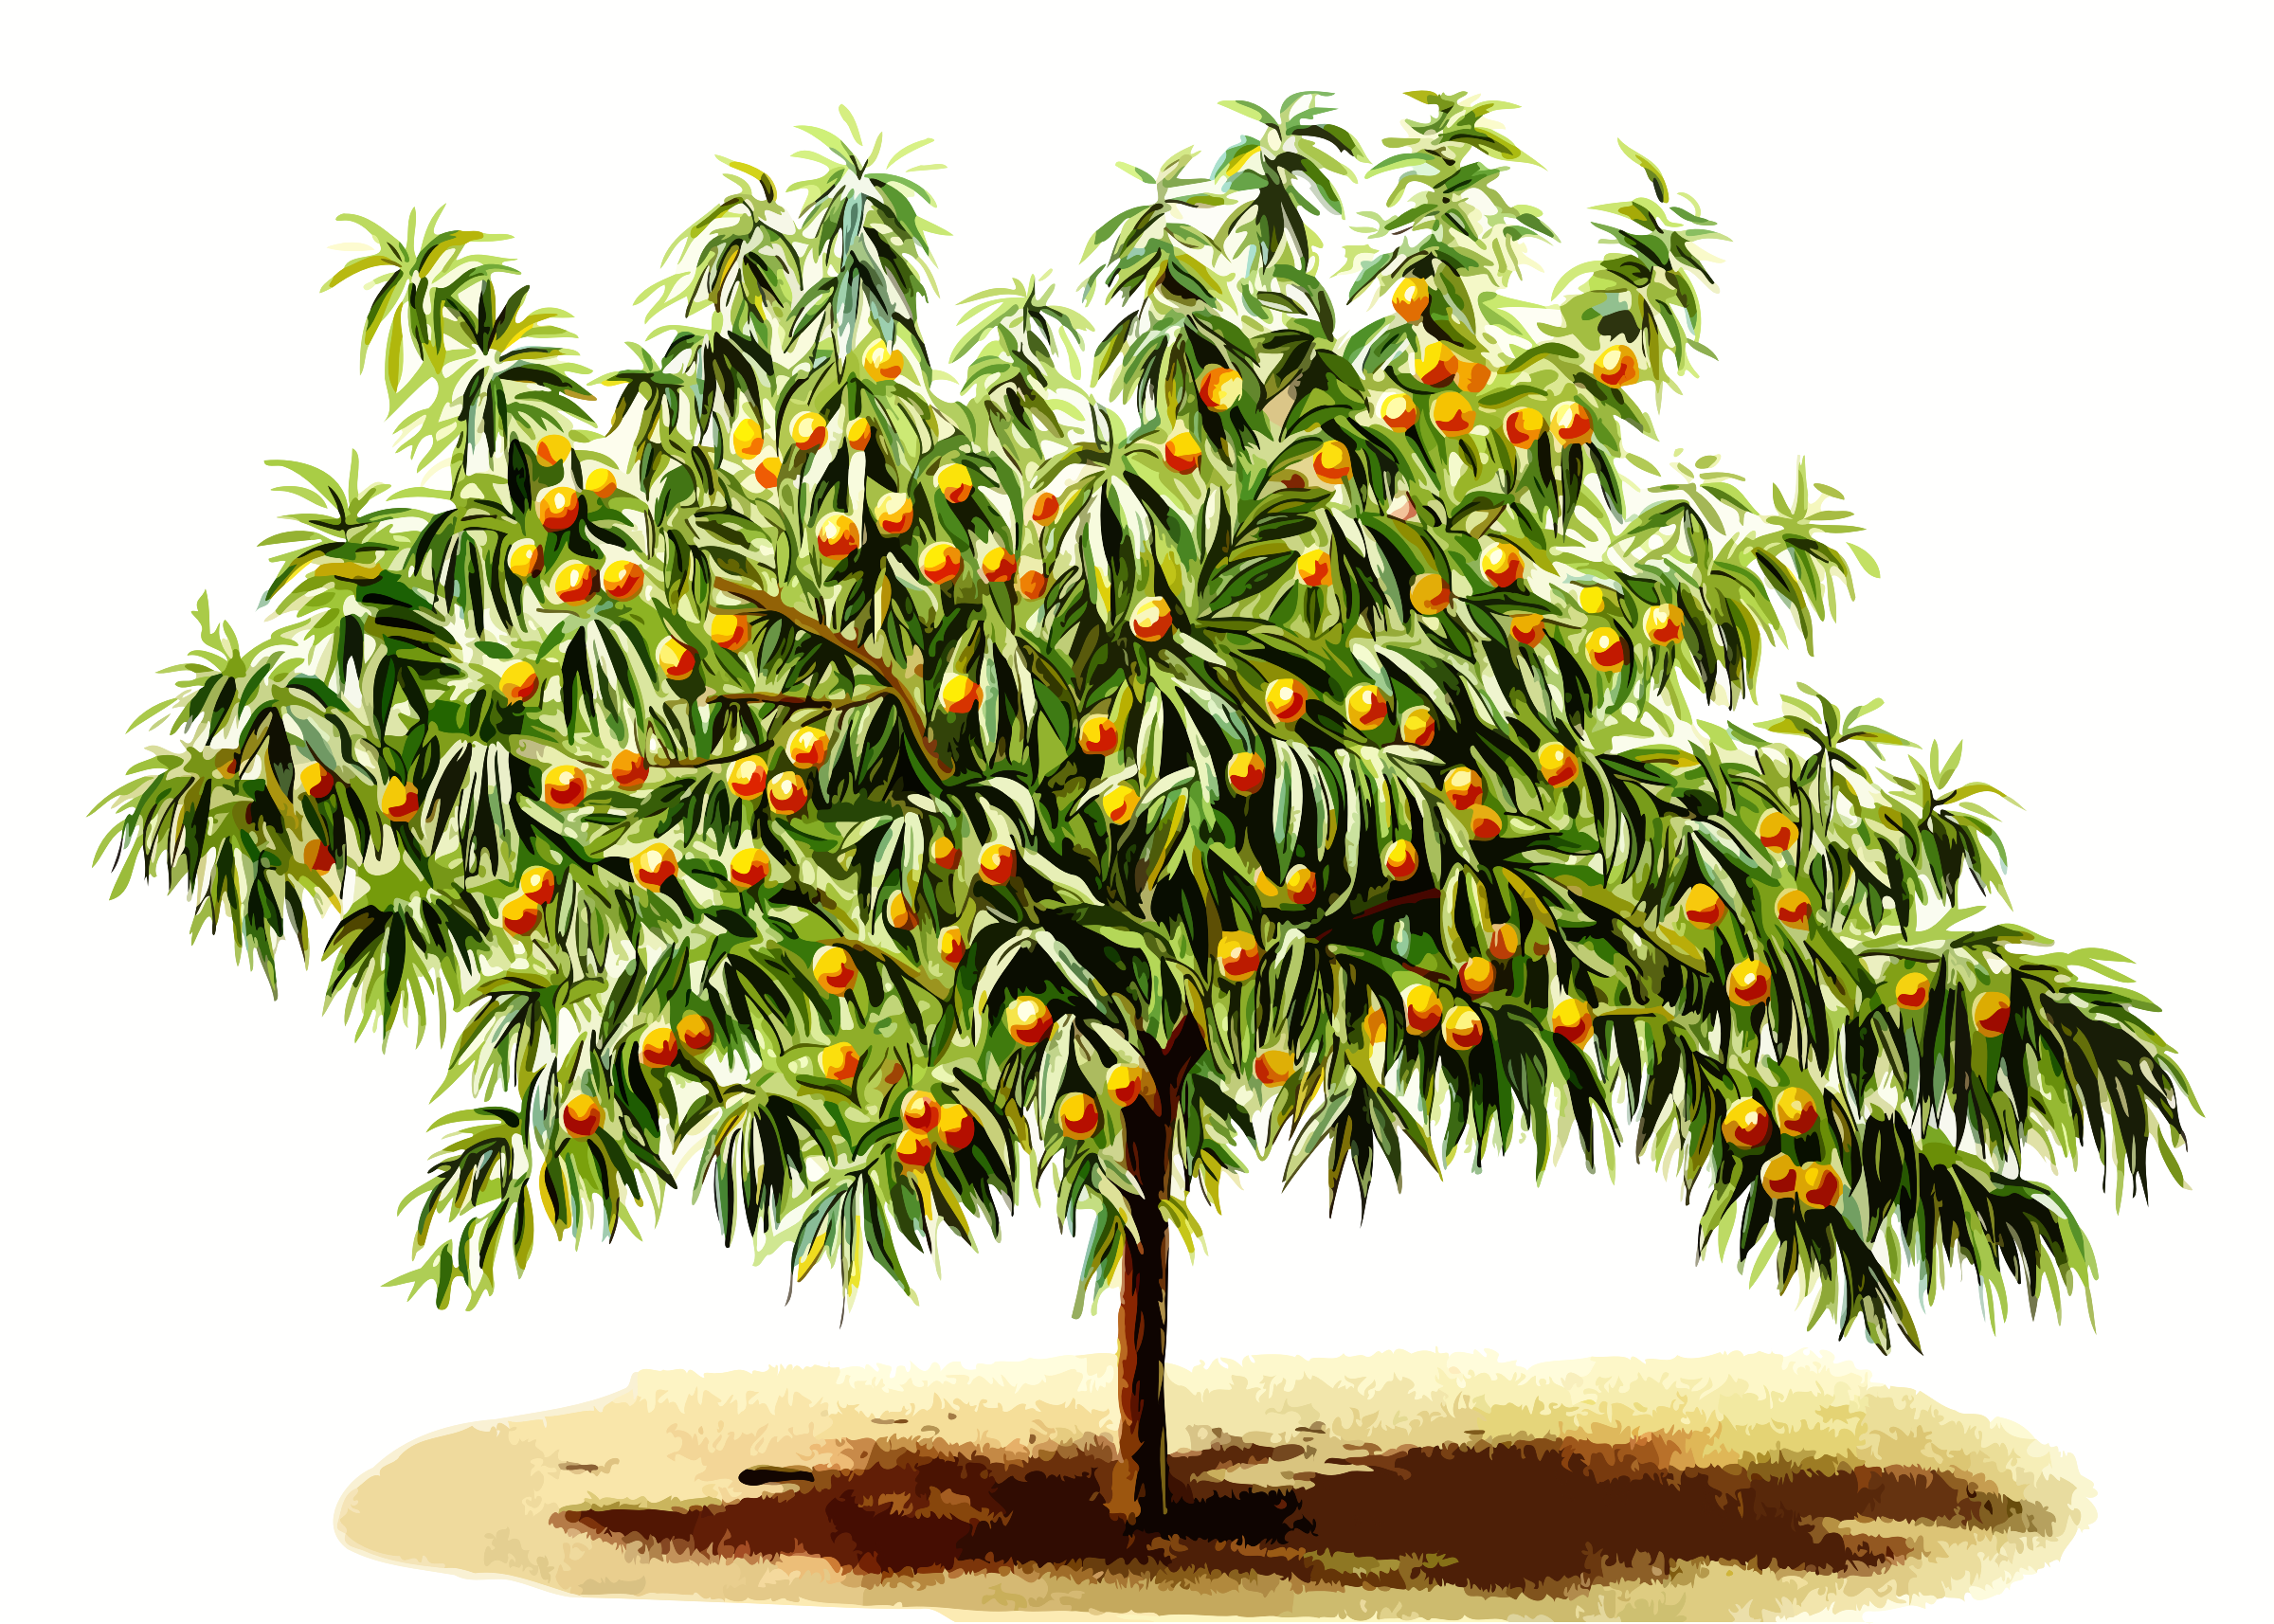 Png peach tree transparent peach tree png images pluspng for Peach tree designs